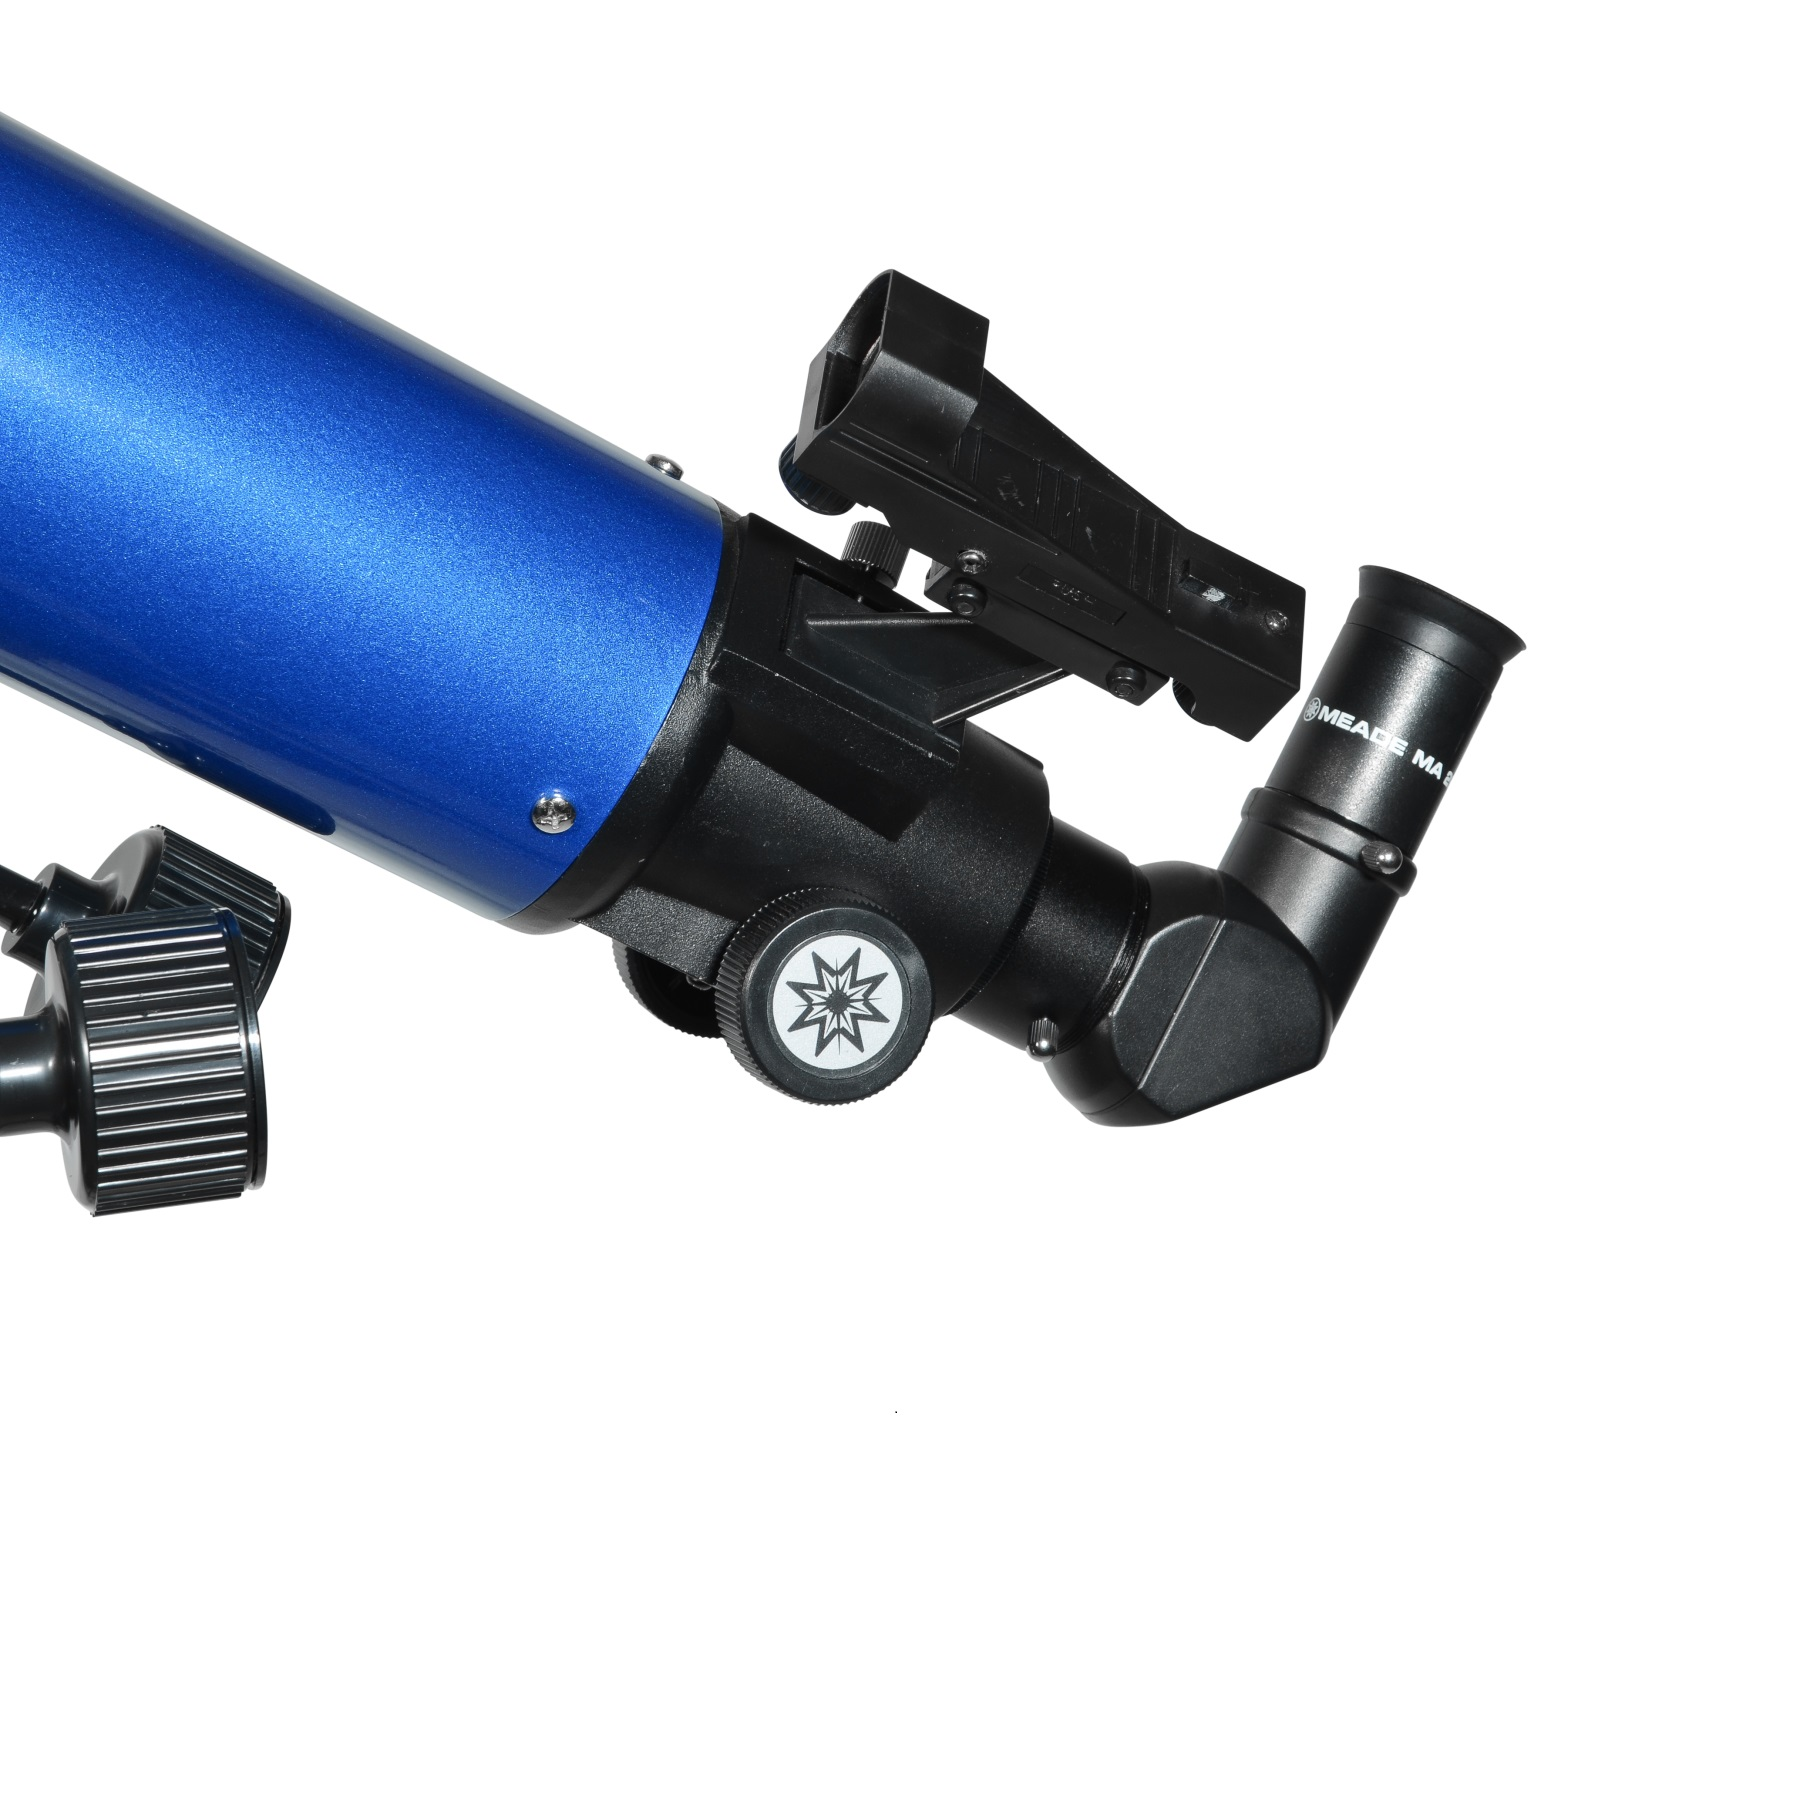 Infinity 90mm Altazimuth Refractor